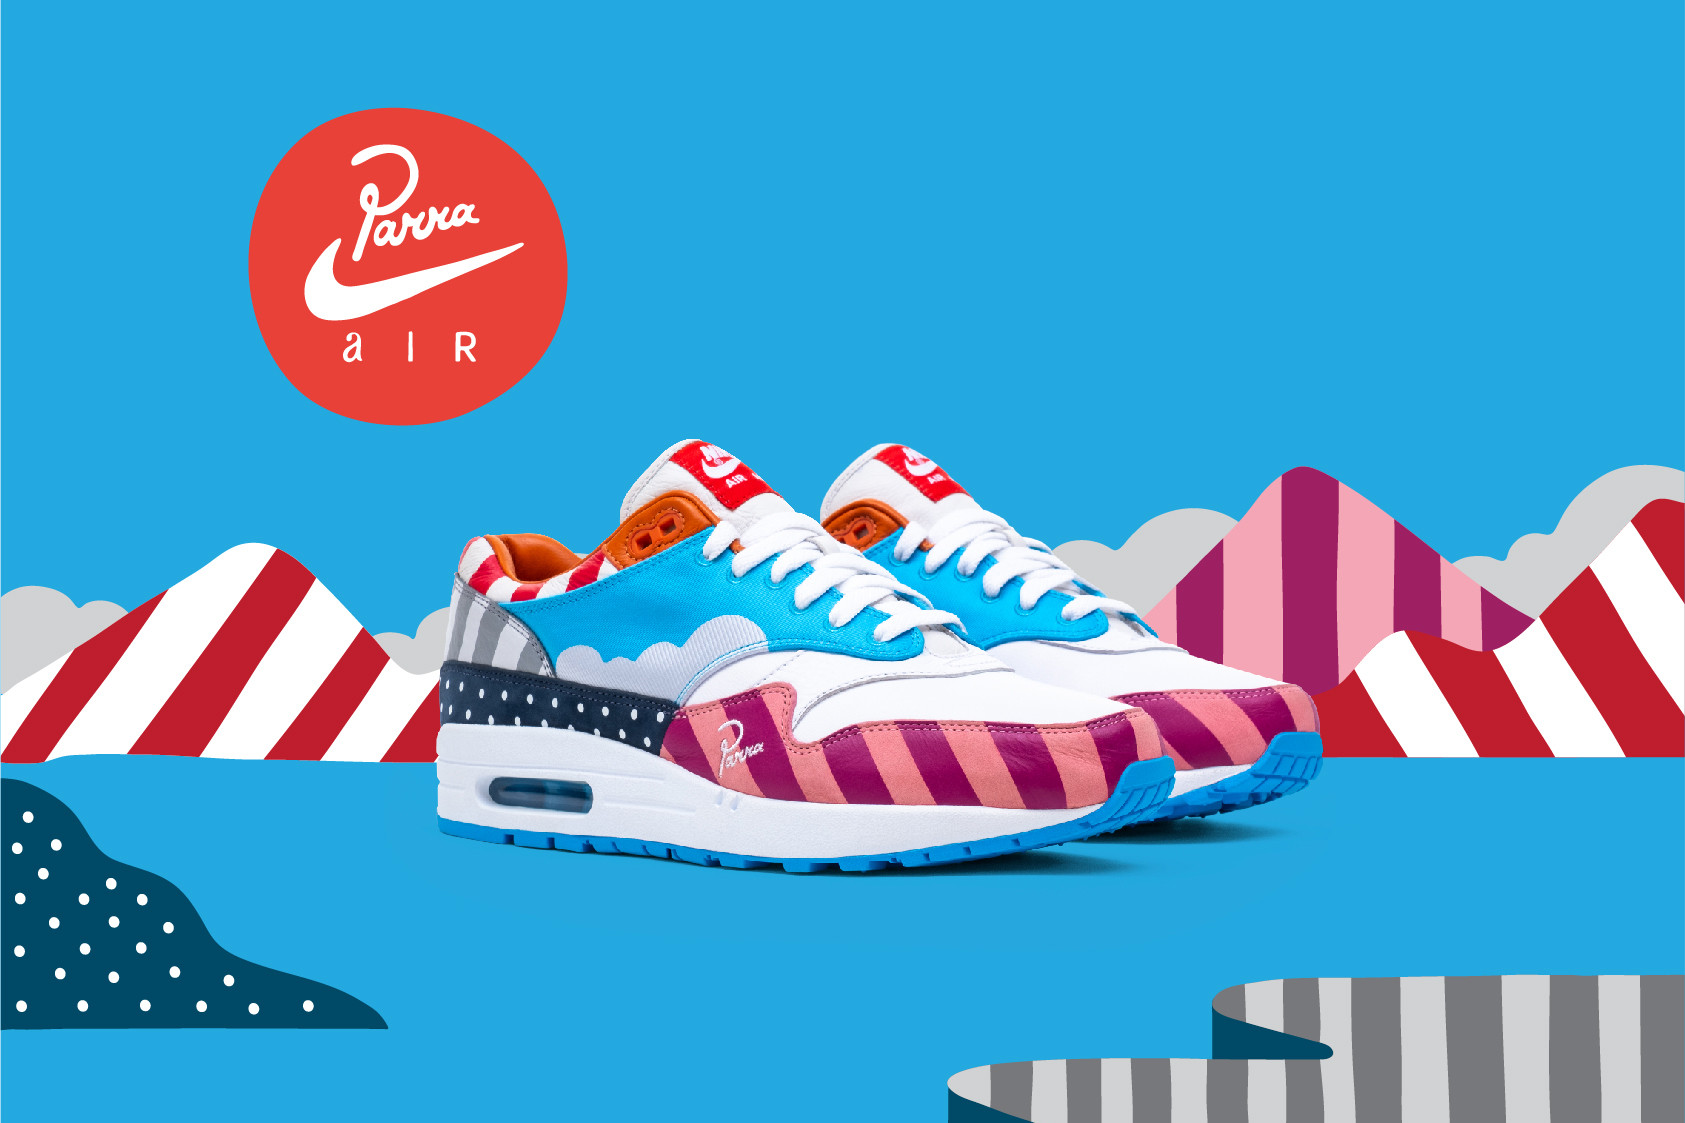 77c2c93abc Over the last week or so, Parra started to reveal some new collaborations  with Nike including his take on the Zoom Spiridon, & Air Max 1 (including a  ...